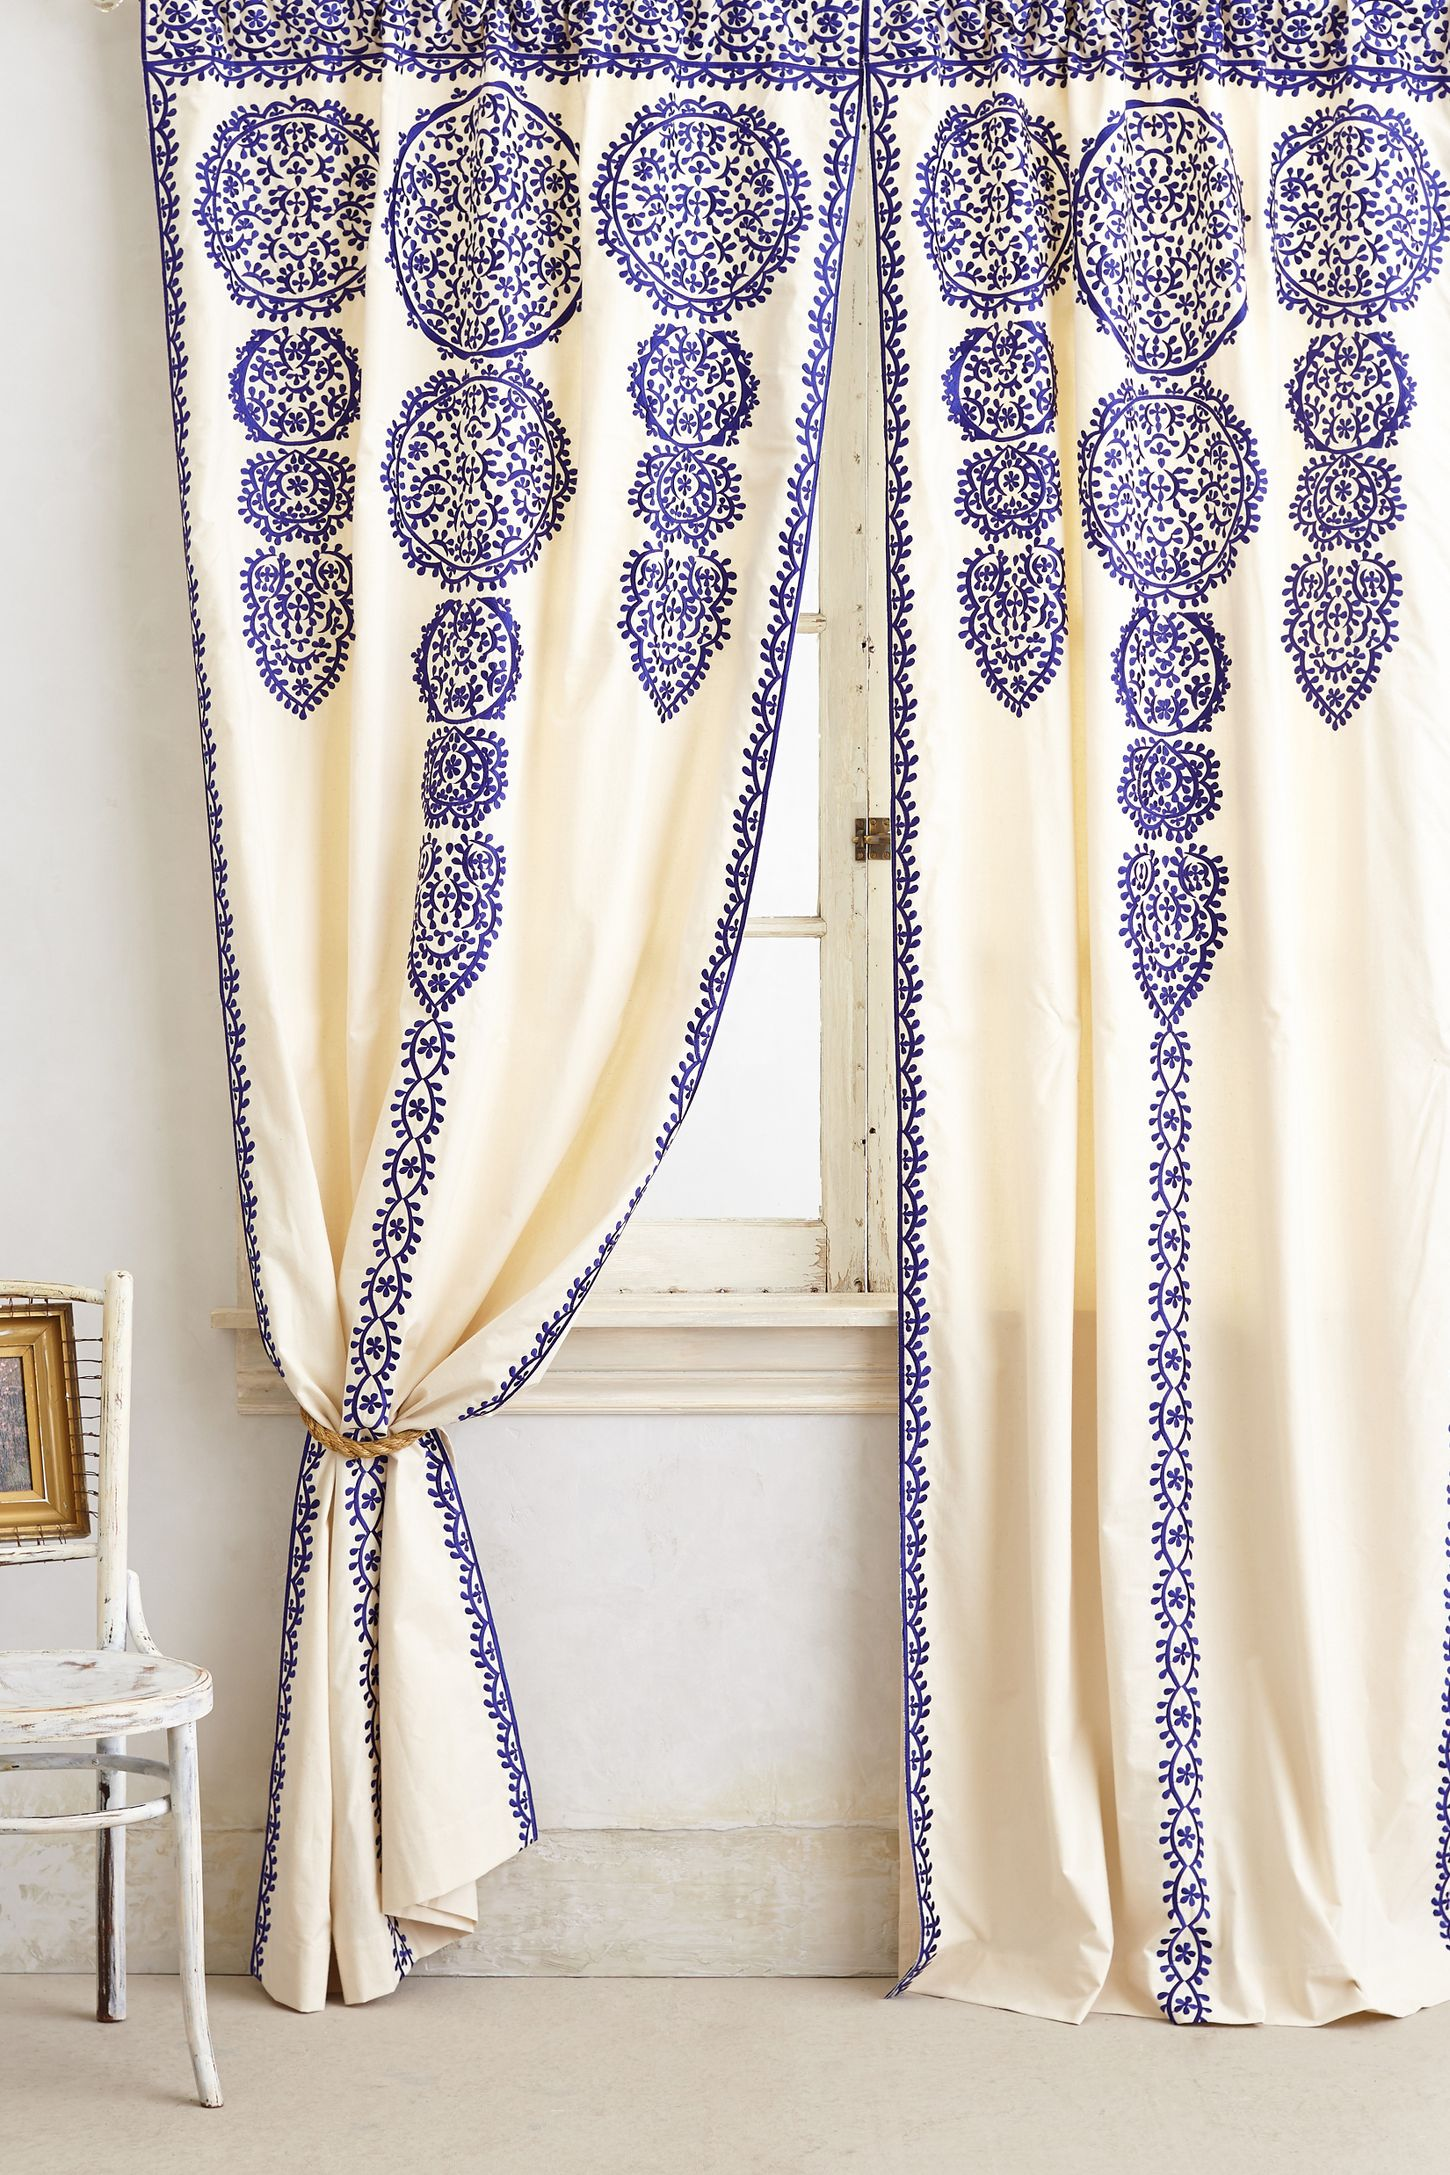 a curtain valance edu kara french full memorable window curtains graceful inspirational drapes designscurtain stunning ideasvictorian curtainswindow of blue size digitalcollections moroccan by inc lattice back sil art step childress famous s chateau time turban luxury covering in si